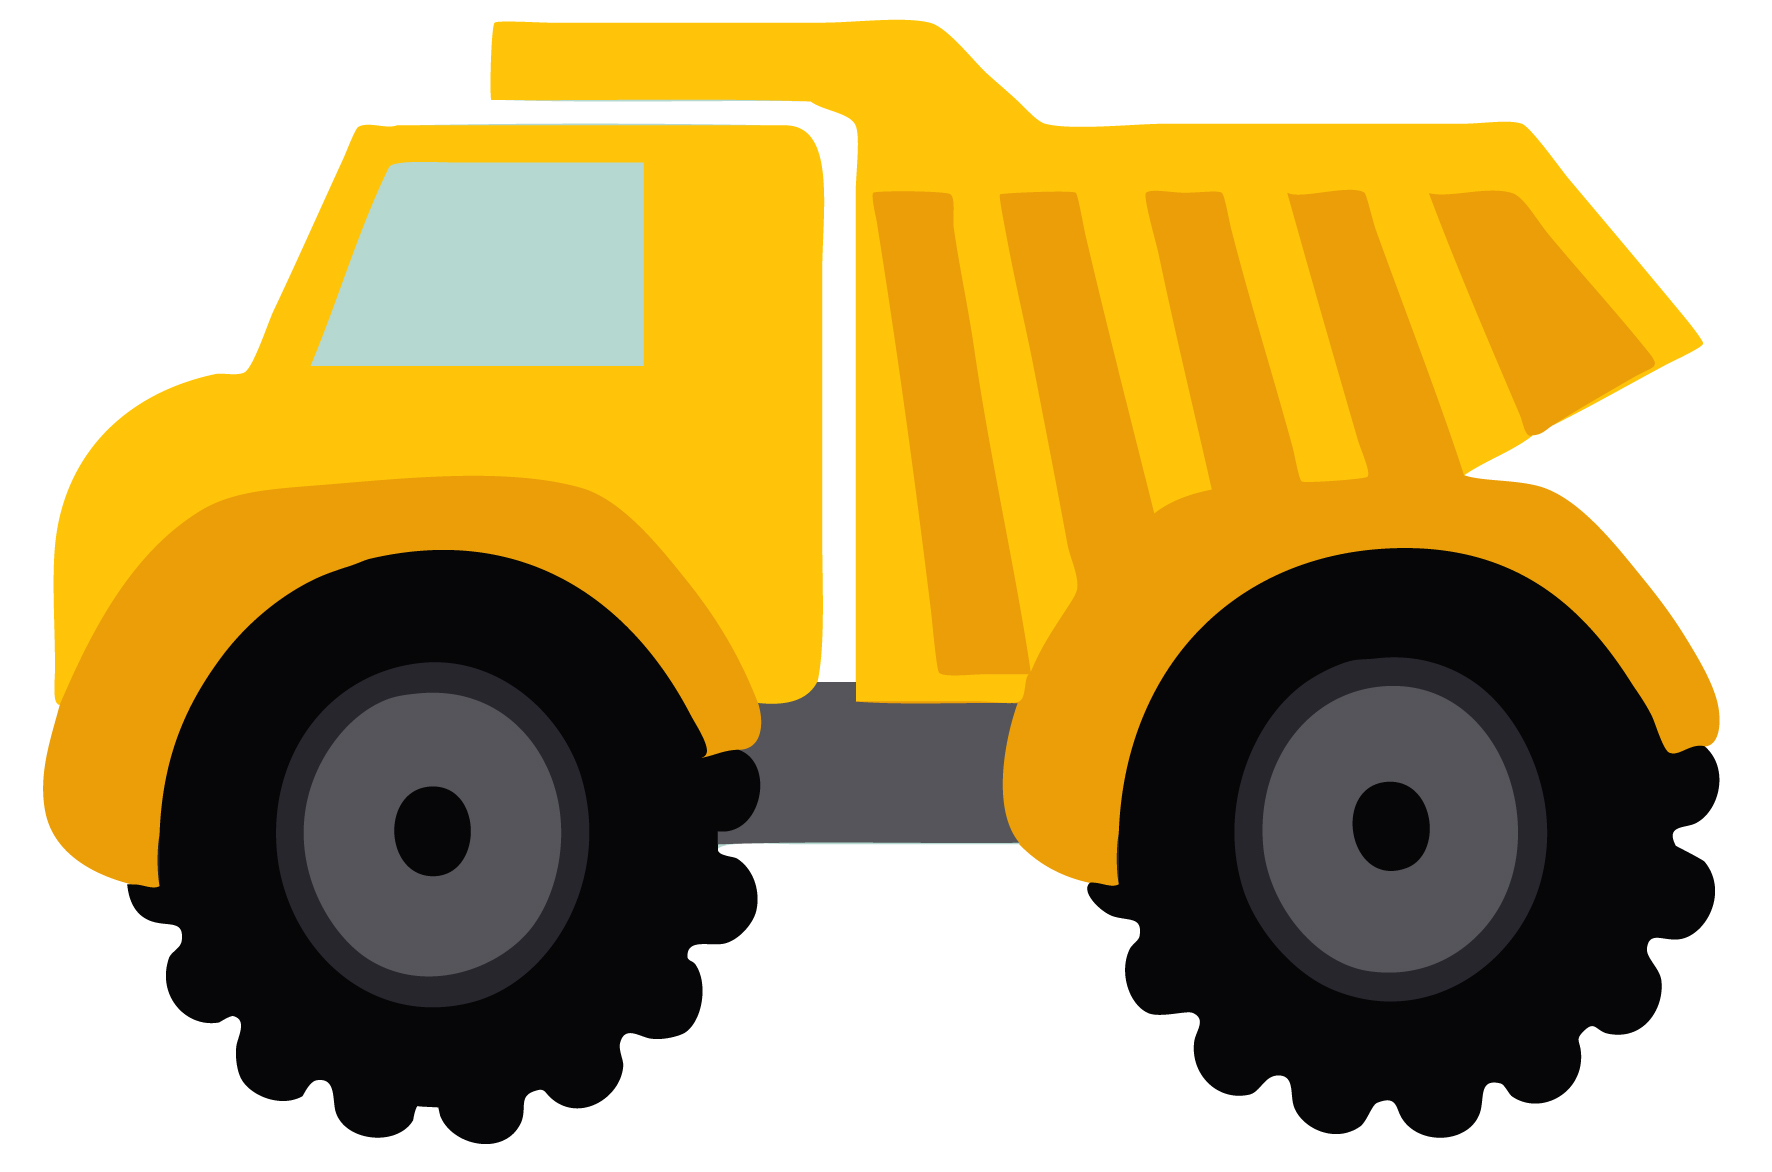 Road Construction Vehicle Png Black And White - Truck black and white semi truck clipart black and white free 2 ...